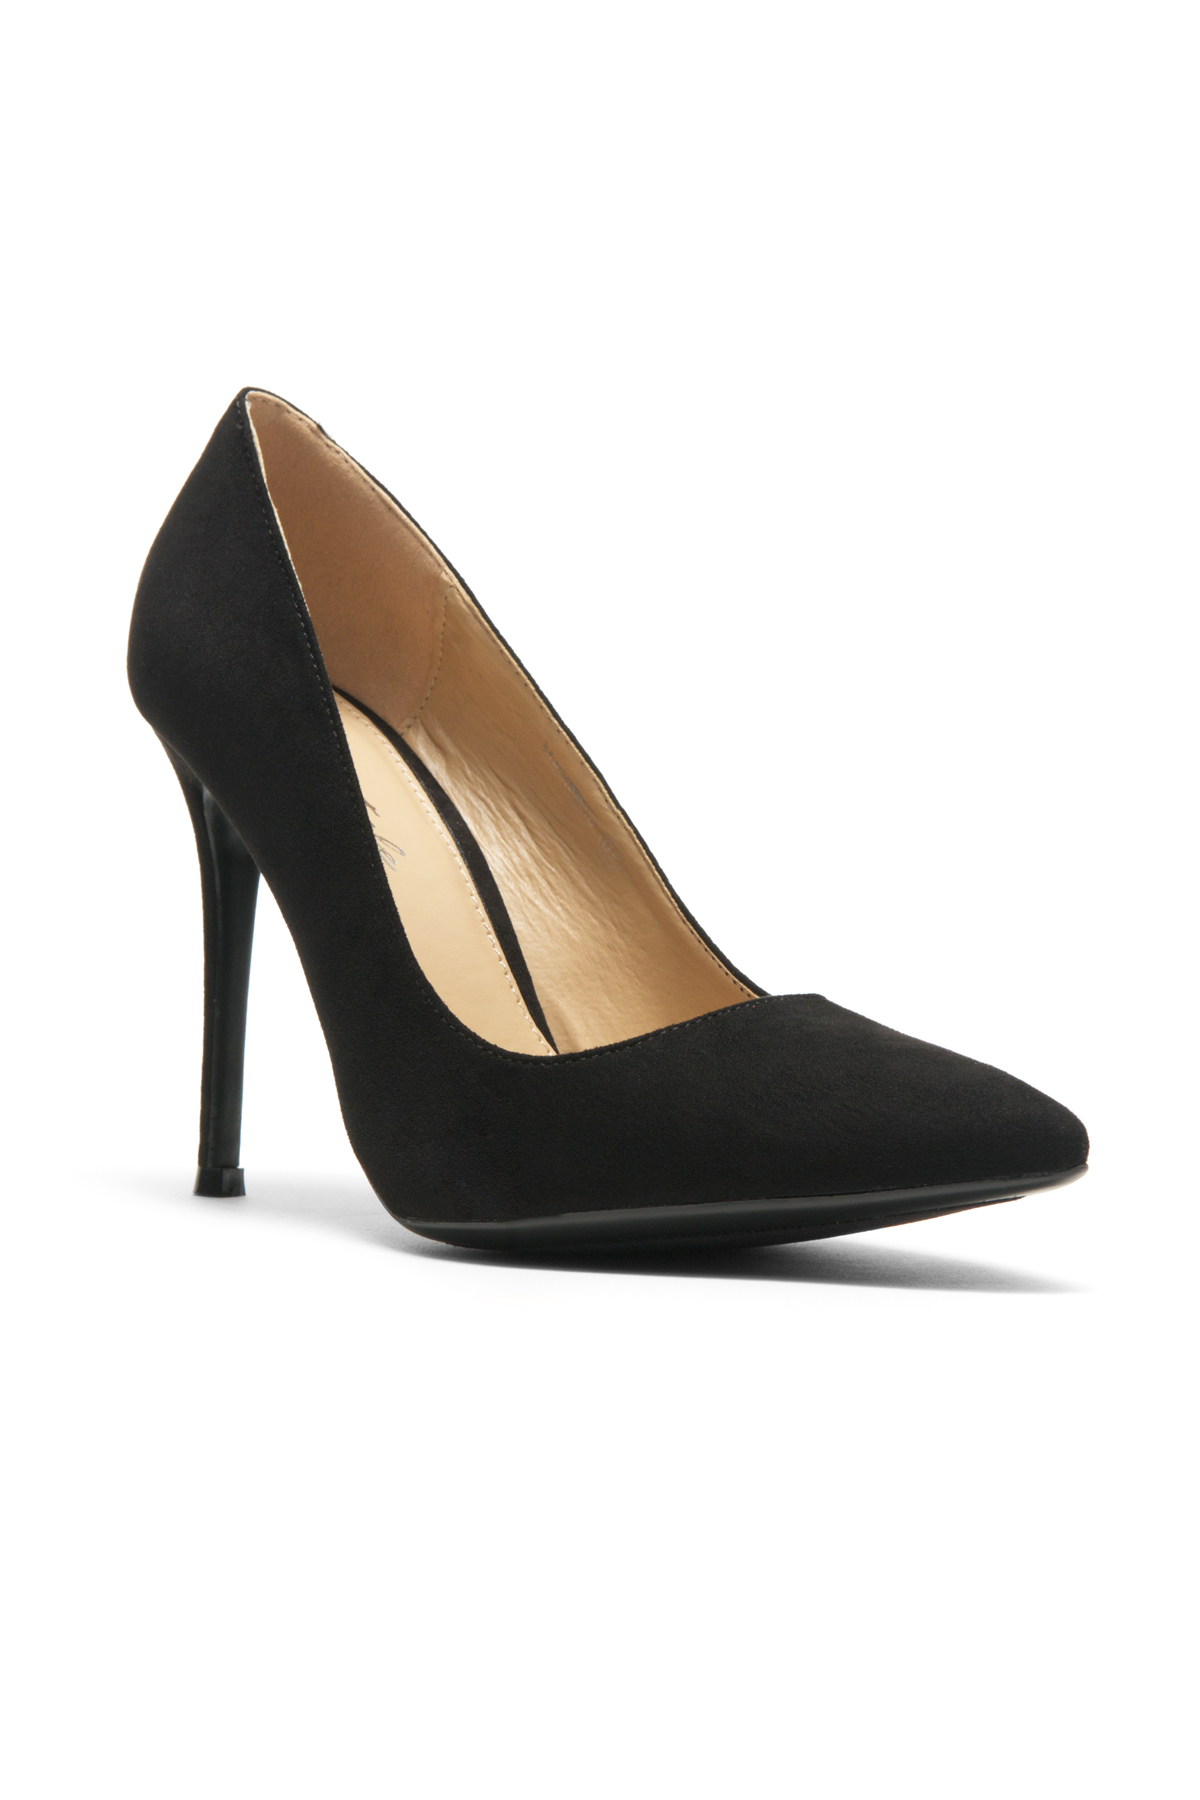 4b666340cda HerStyle Marneena-Women s Manmade 4-inch Sueded Heel with Lightly Pointed  Toe (Black)